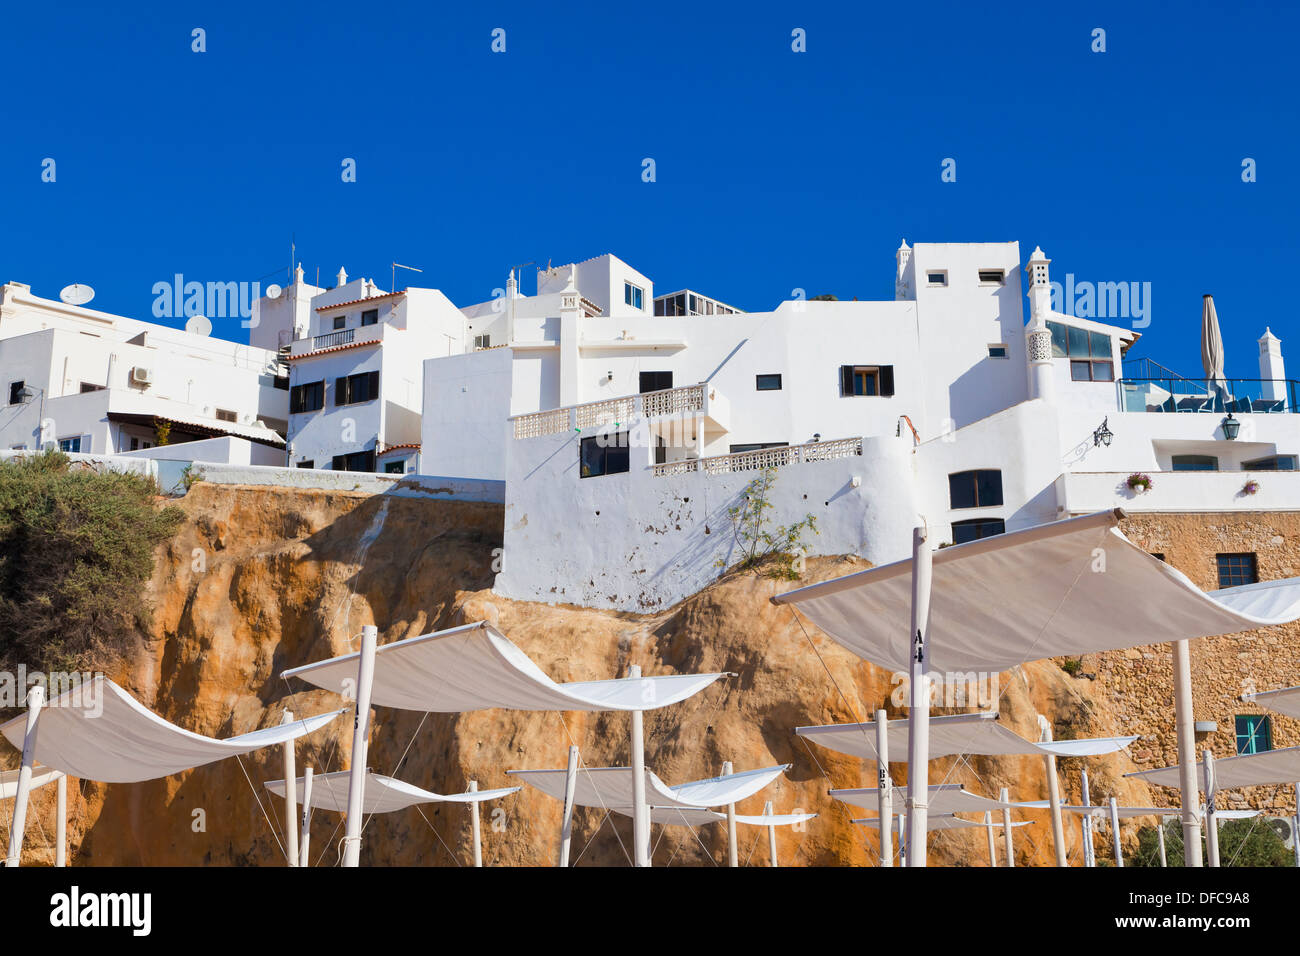 Portugal, Lagos, View of townscape - Stock Image